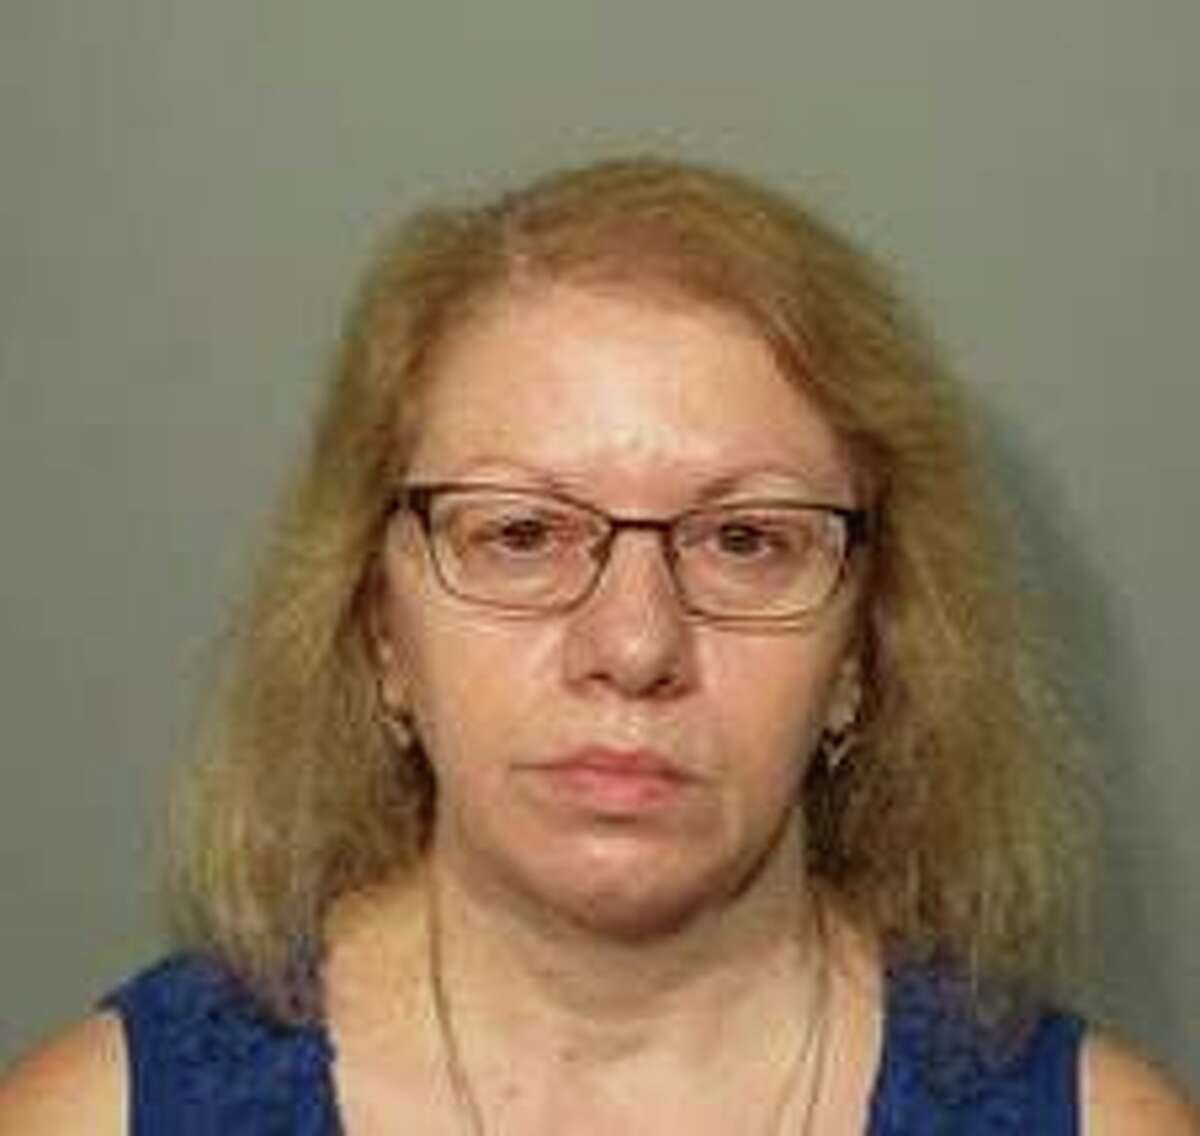 Joanne Pascarelli has pleaded not guilty to charges related to the theft of nearly one-half million dollars from food services in New Canaan Public Schools.